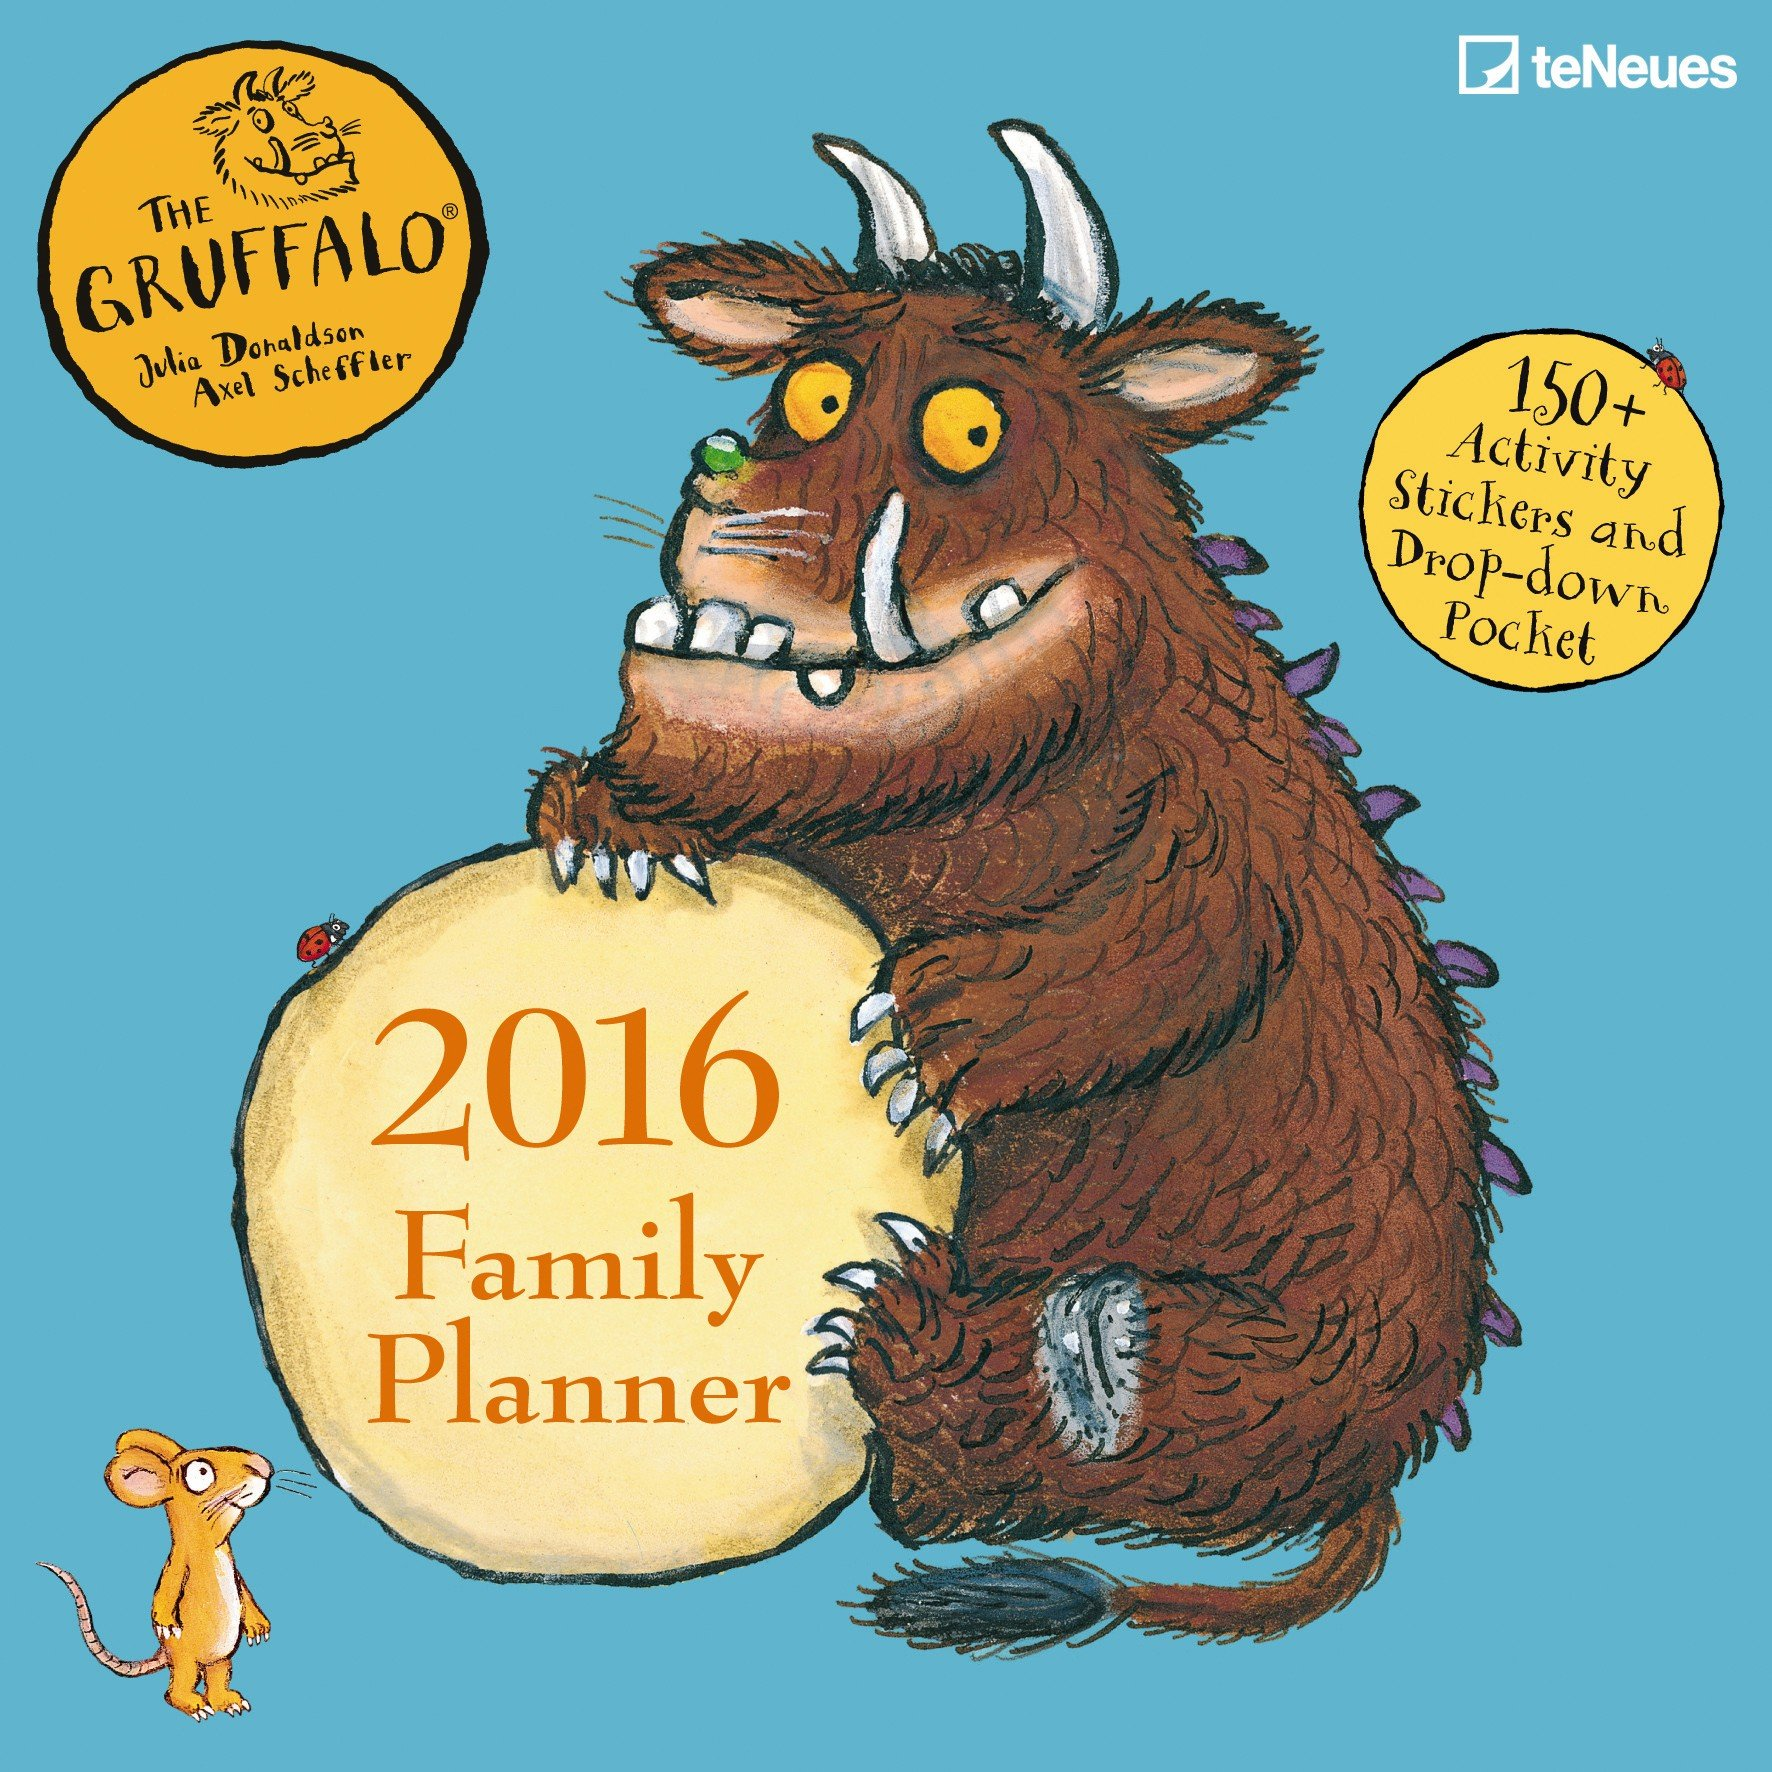 Gruffalo 2016 family planner 30 x 30 cm amazon teneues gruffalo 2016 family planner 30 x 30 cm amazon teneues books amipublicfo Image collections